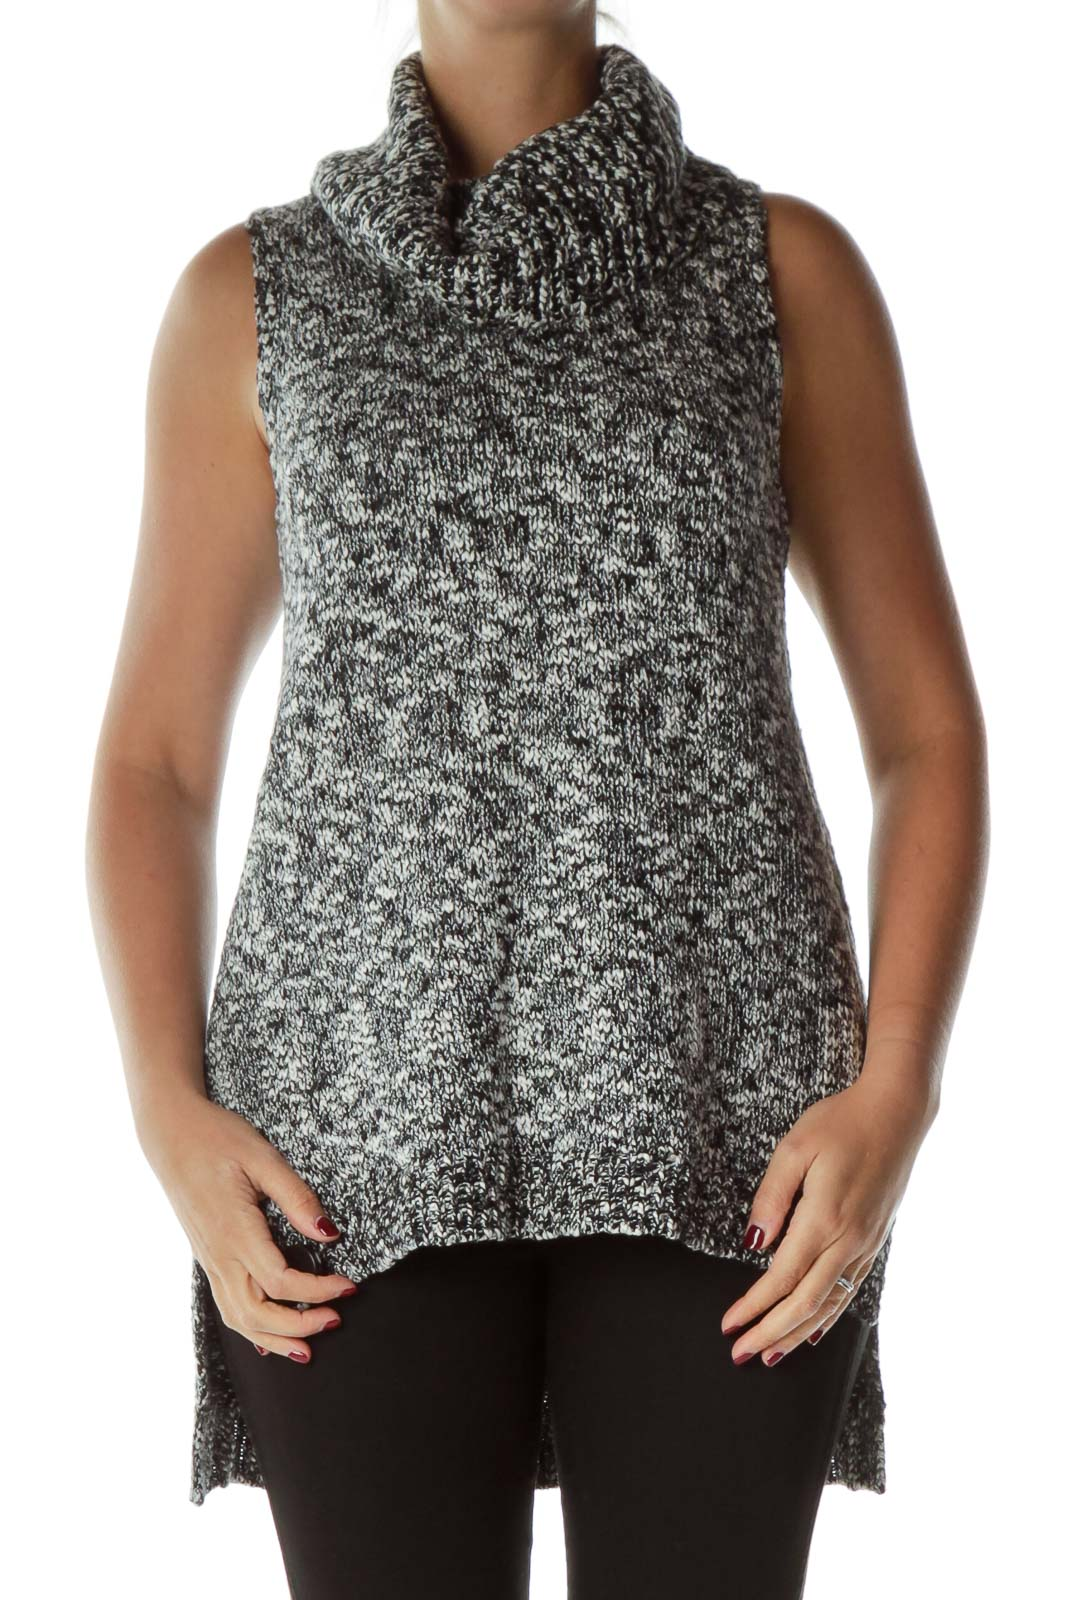 Black White Mottled Cowl Neck Sleeveless Sweater